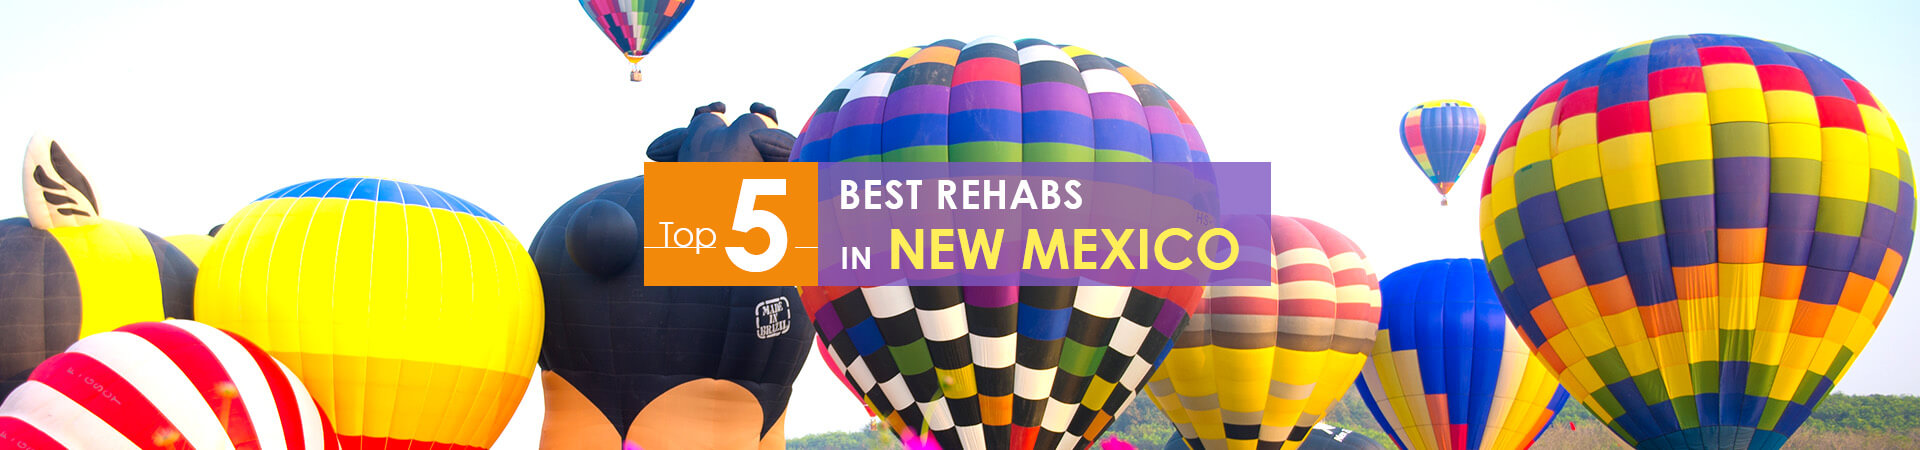 balloons festival view and top 5 rehabs in new mexico caption